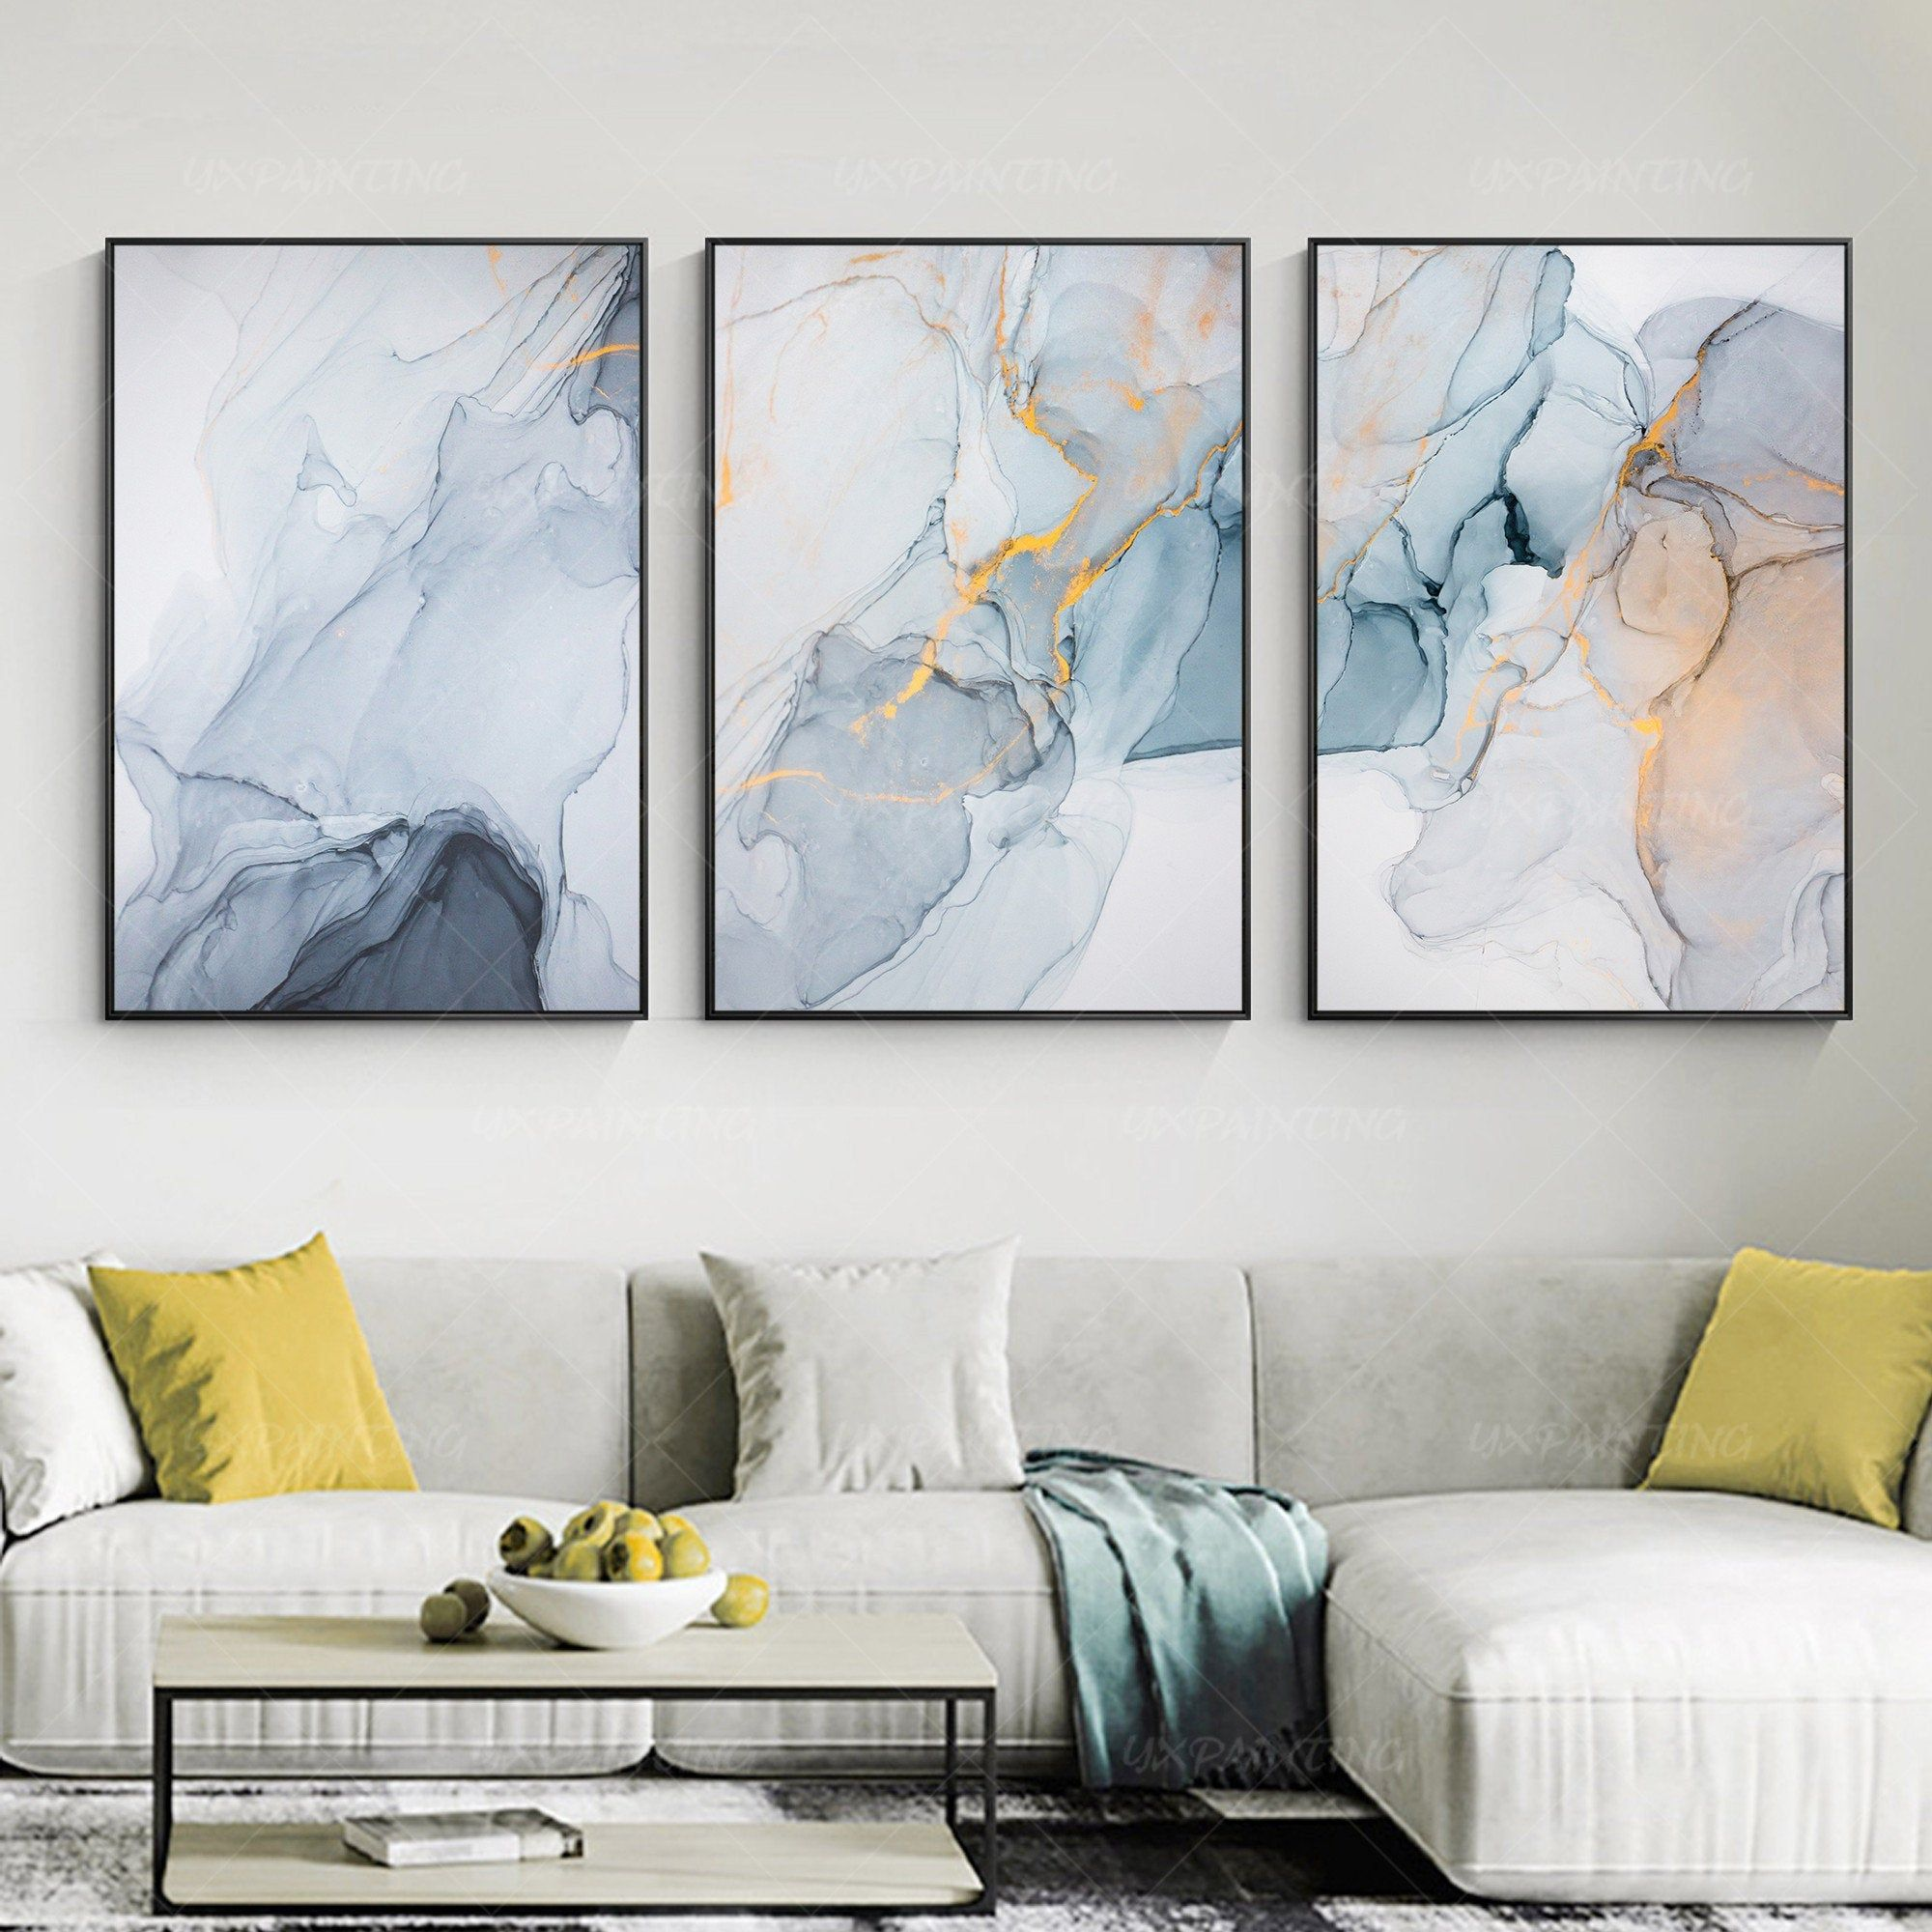 3 Pieces Wall Art Gold Art Abstract Print On Canvas Ready To Etsy In 2020 3 Piece Wall Art Abstract Print Statement Art Living Room